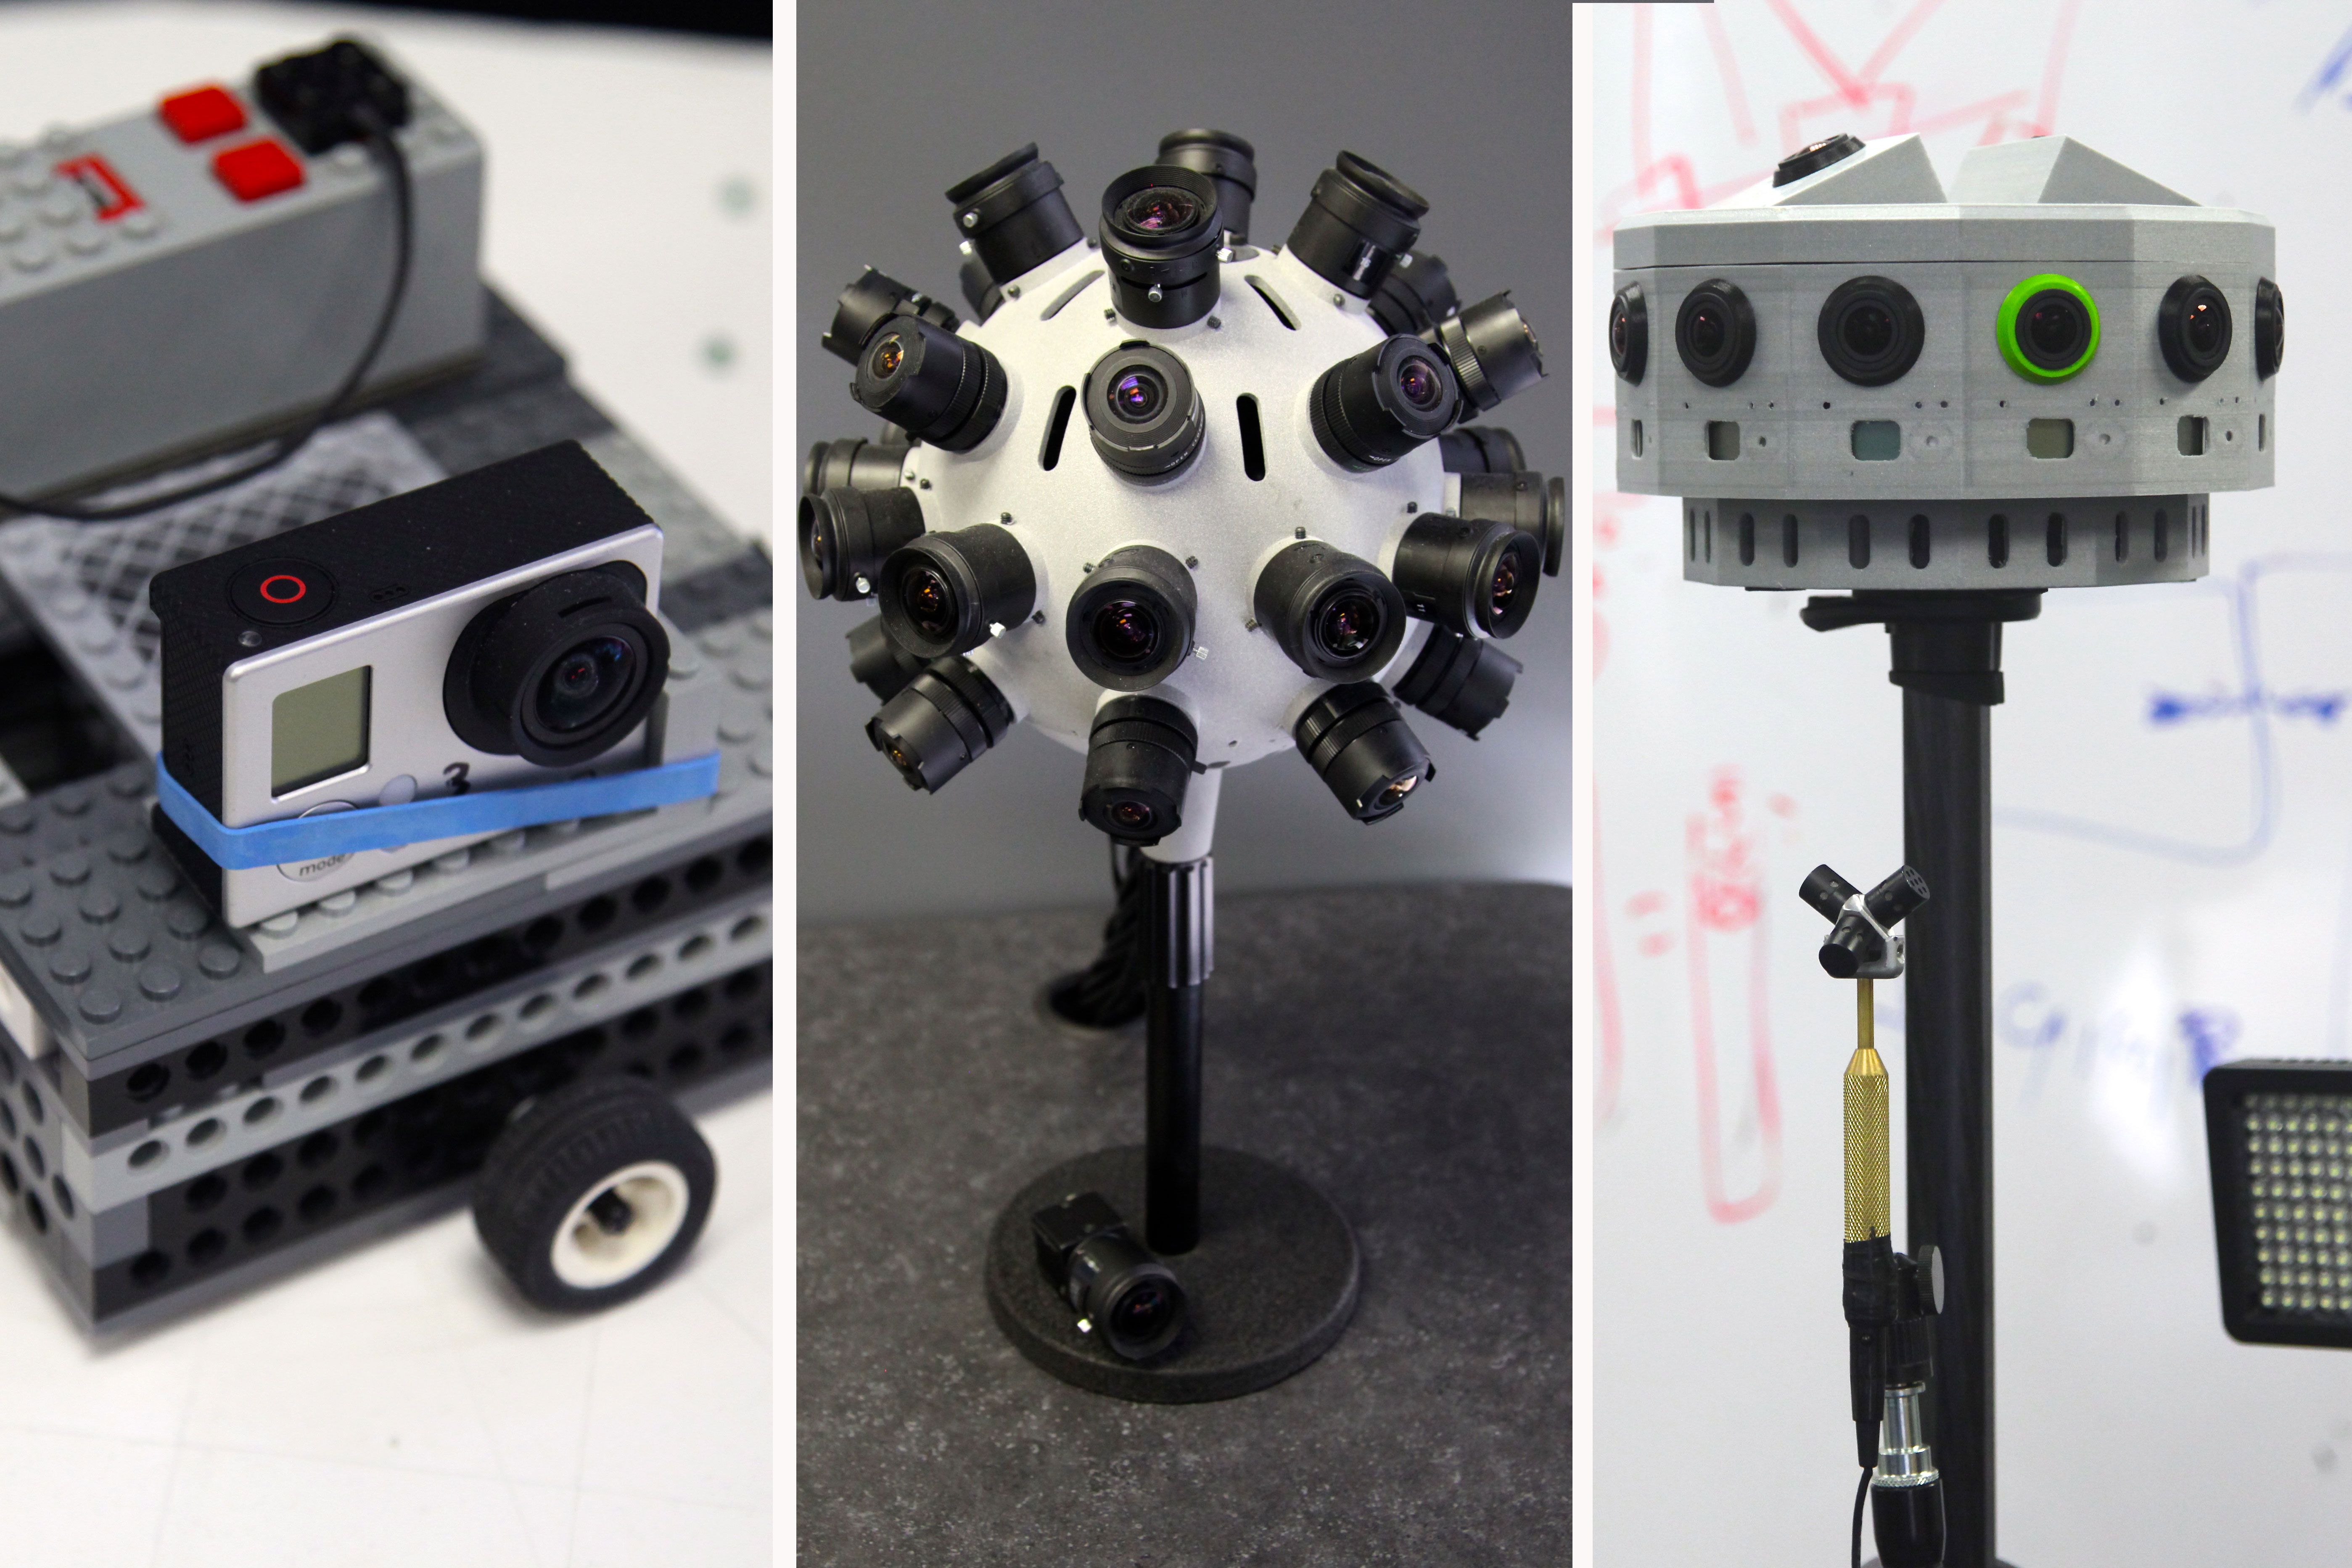 Jaunt is working on a totally new 360 degree camera, but has already shot footage on several prototypes. Its first prototype, pictured on the left, was built out of Legos and a GoPro camera that turned slowly in a circle. Photos by Signe Brewster.